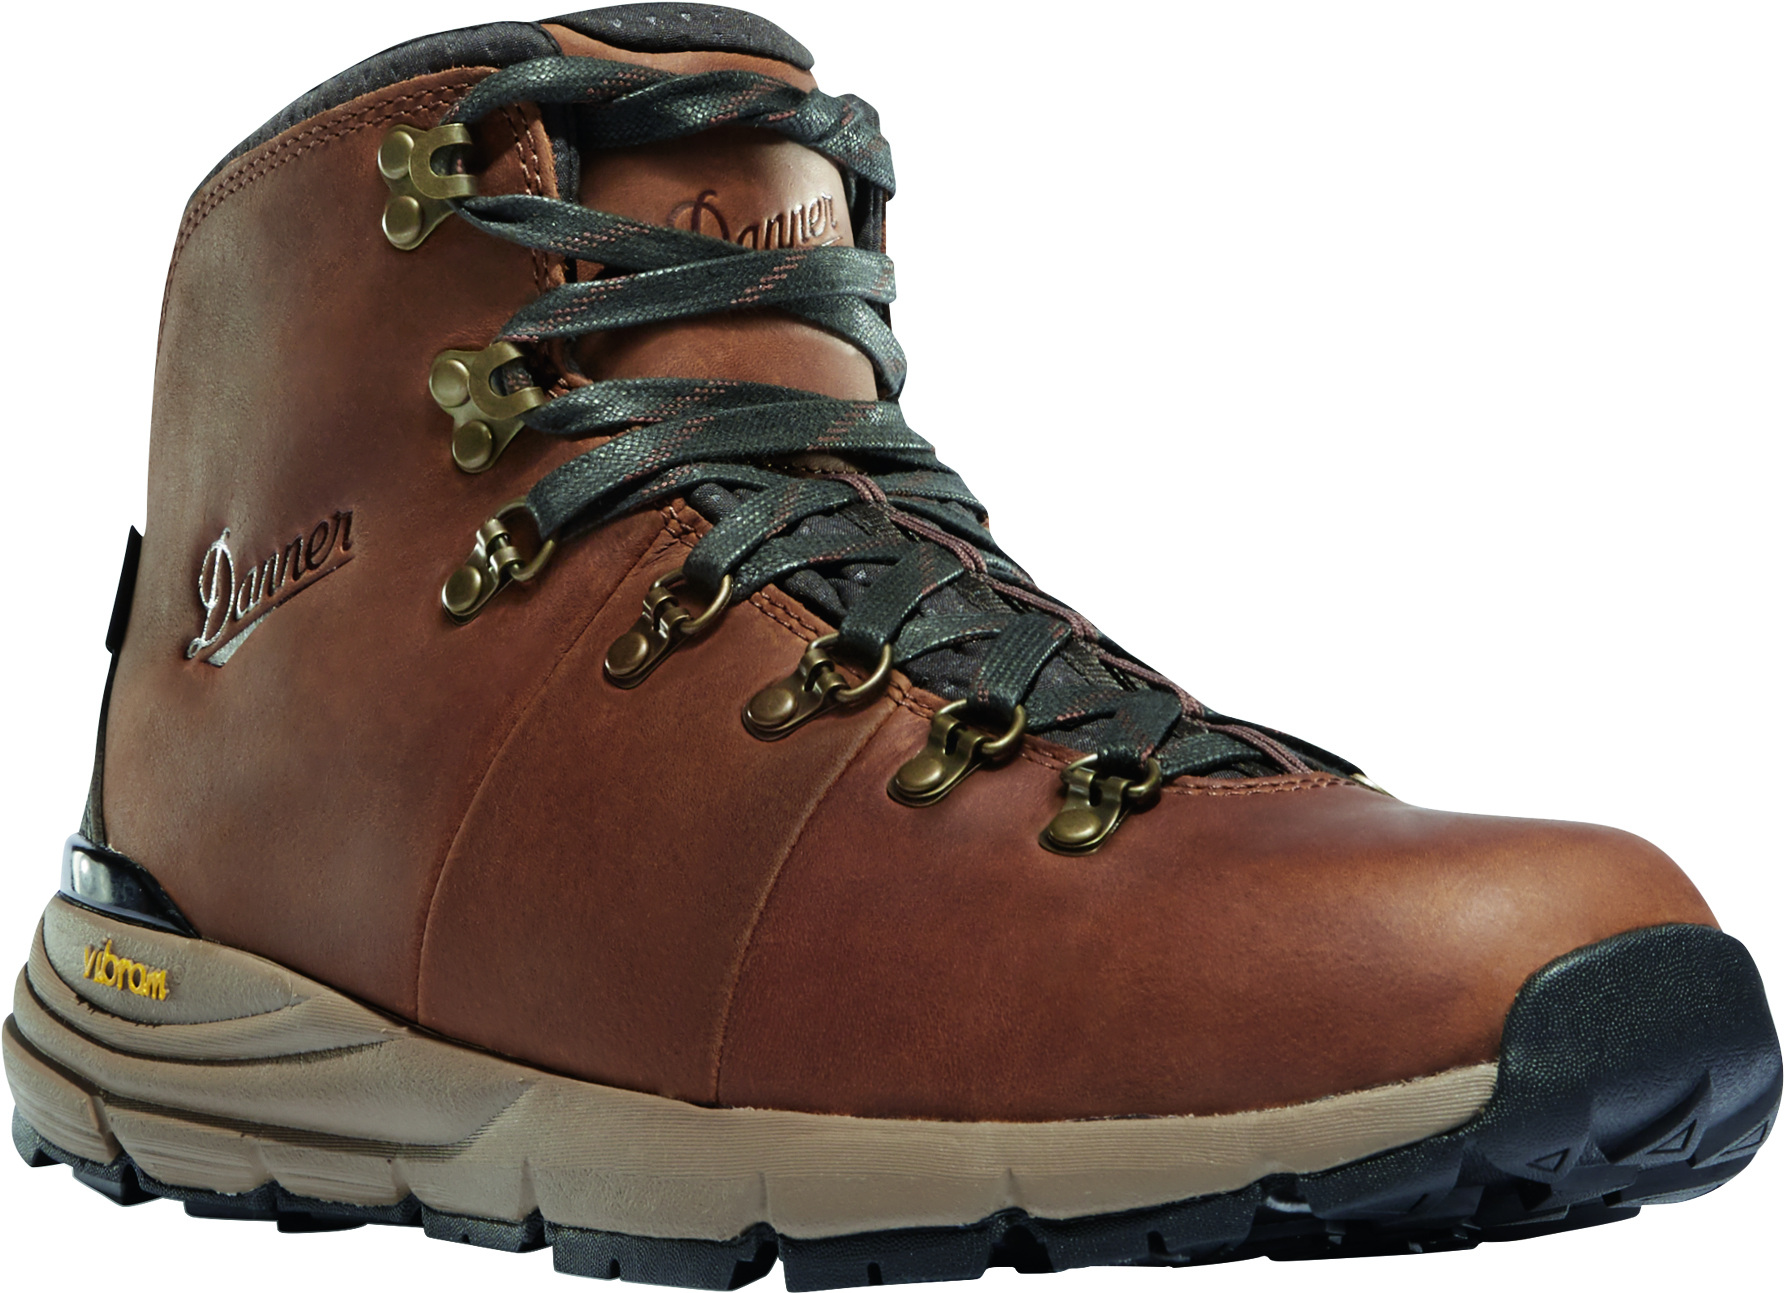 62b2ad6a668 Danner Mountain 600 Full Grain Waterproof Boots - Men's